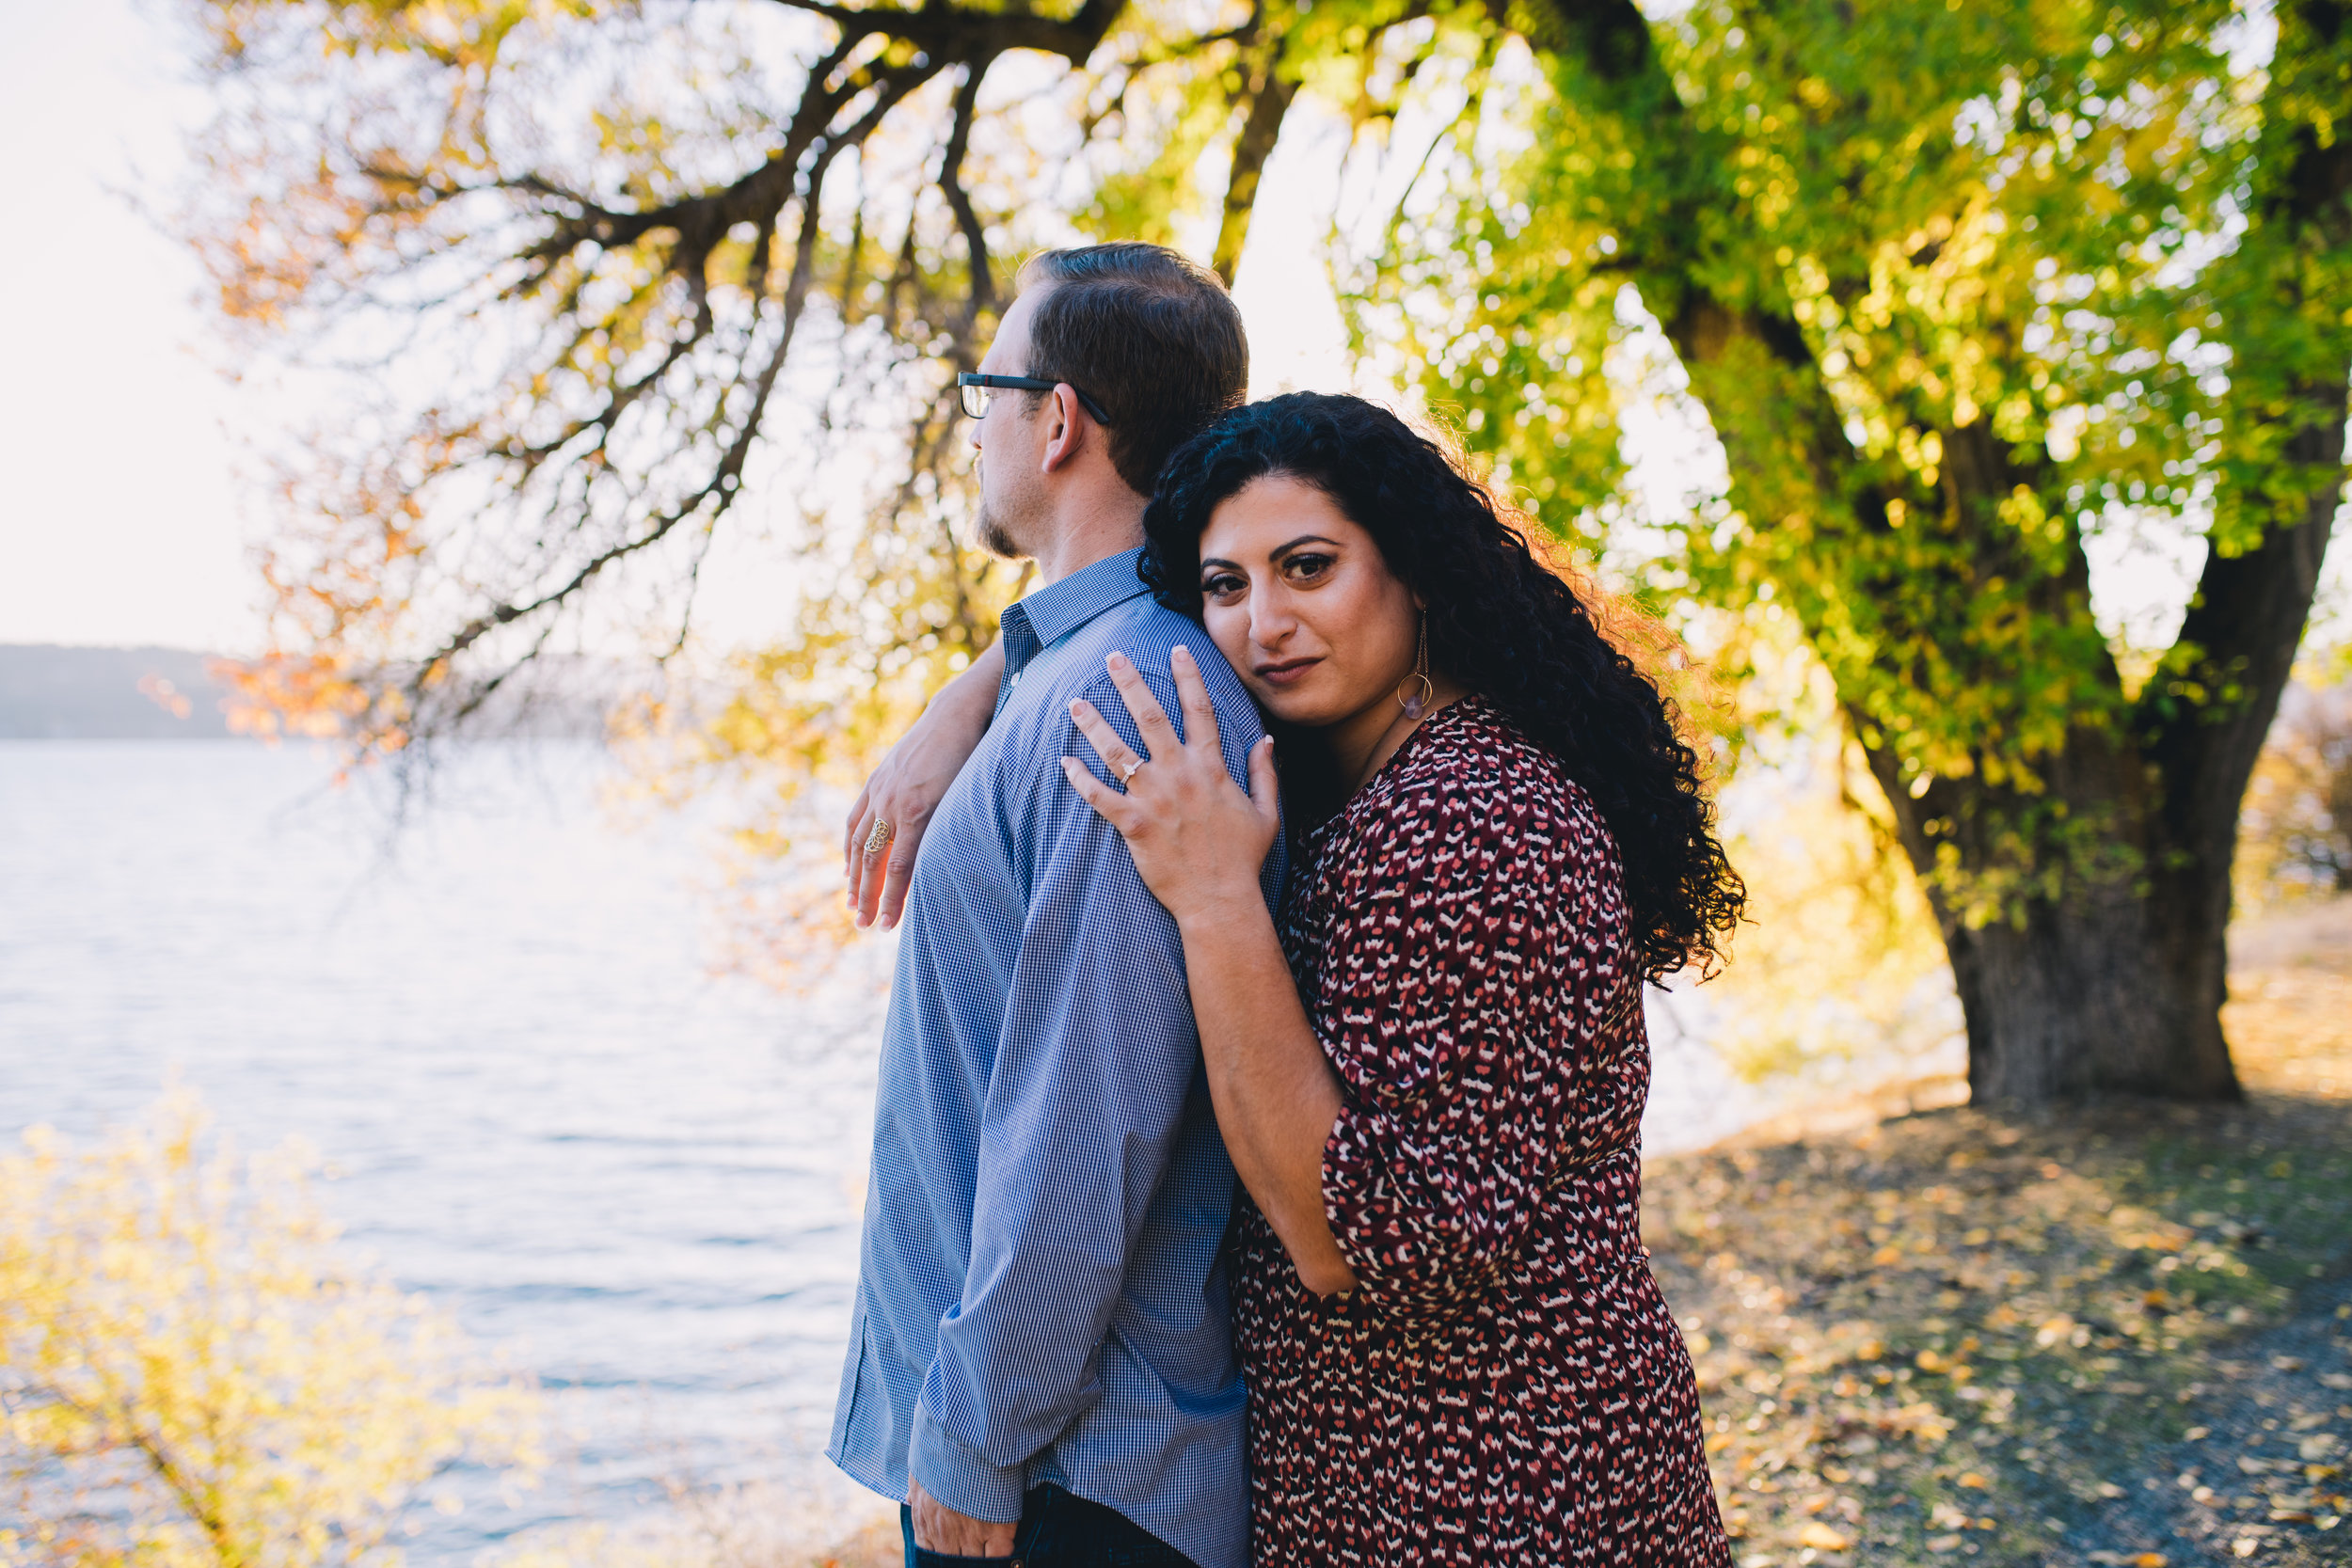 Final_Rabab&Andrew-107.jpg